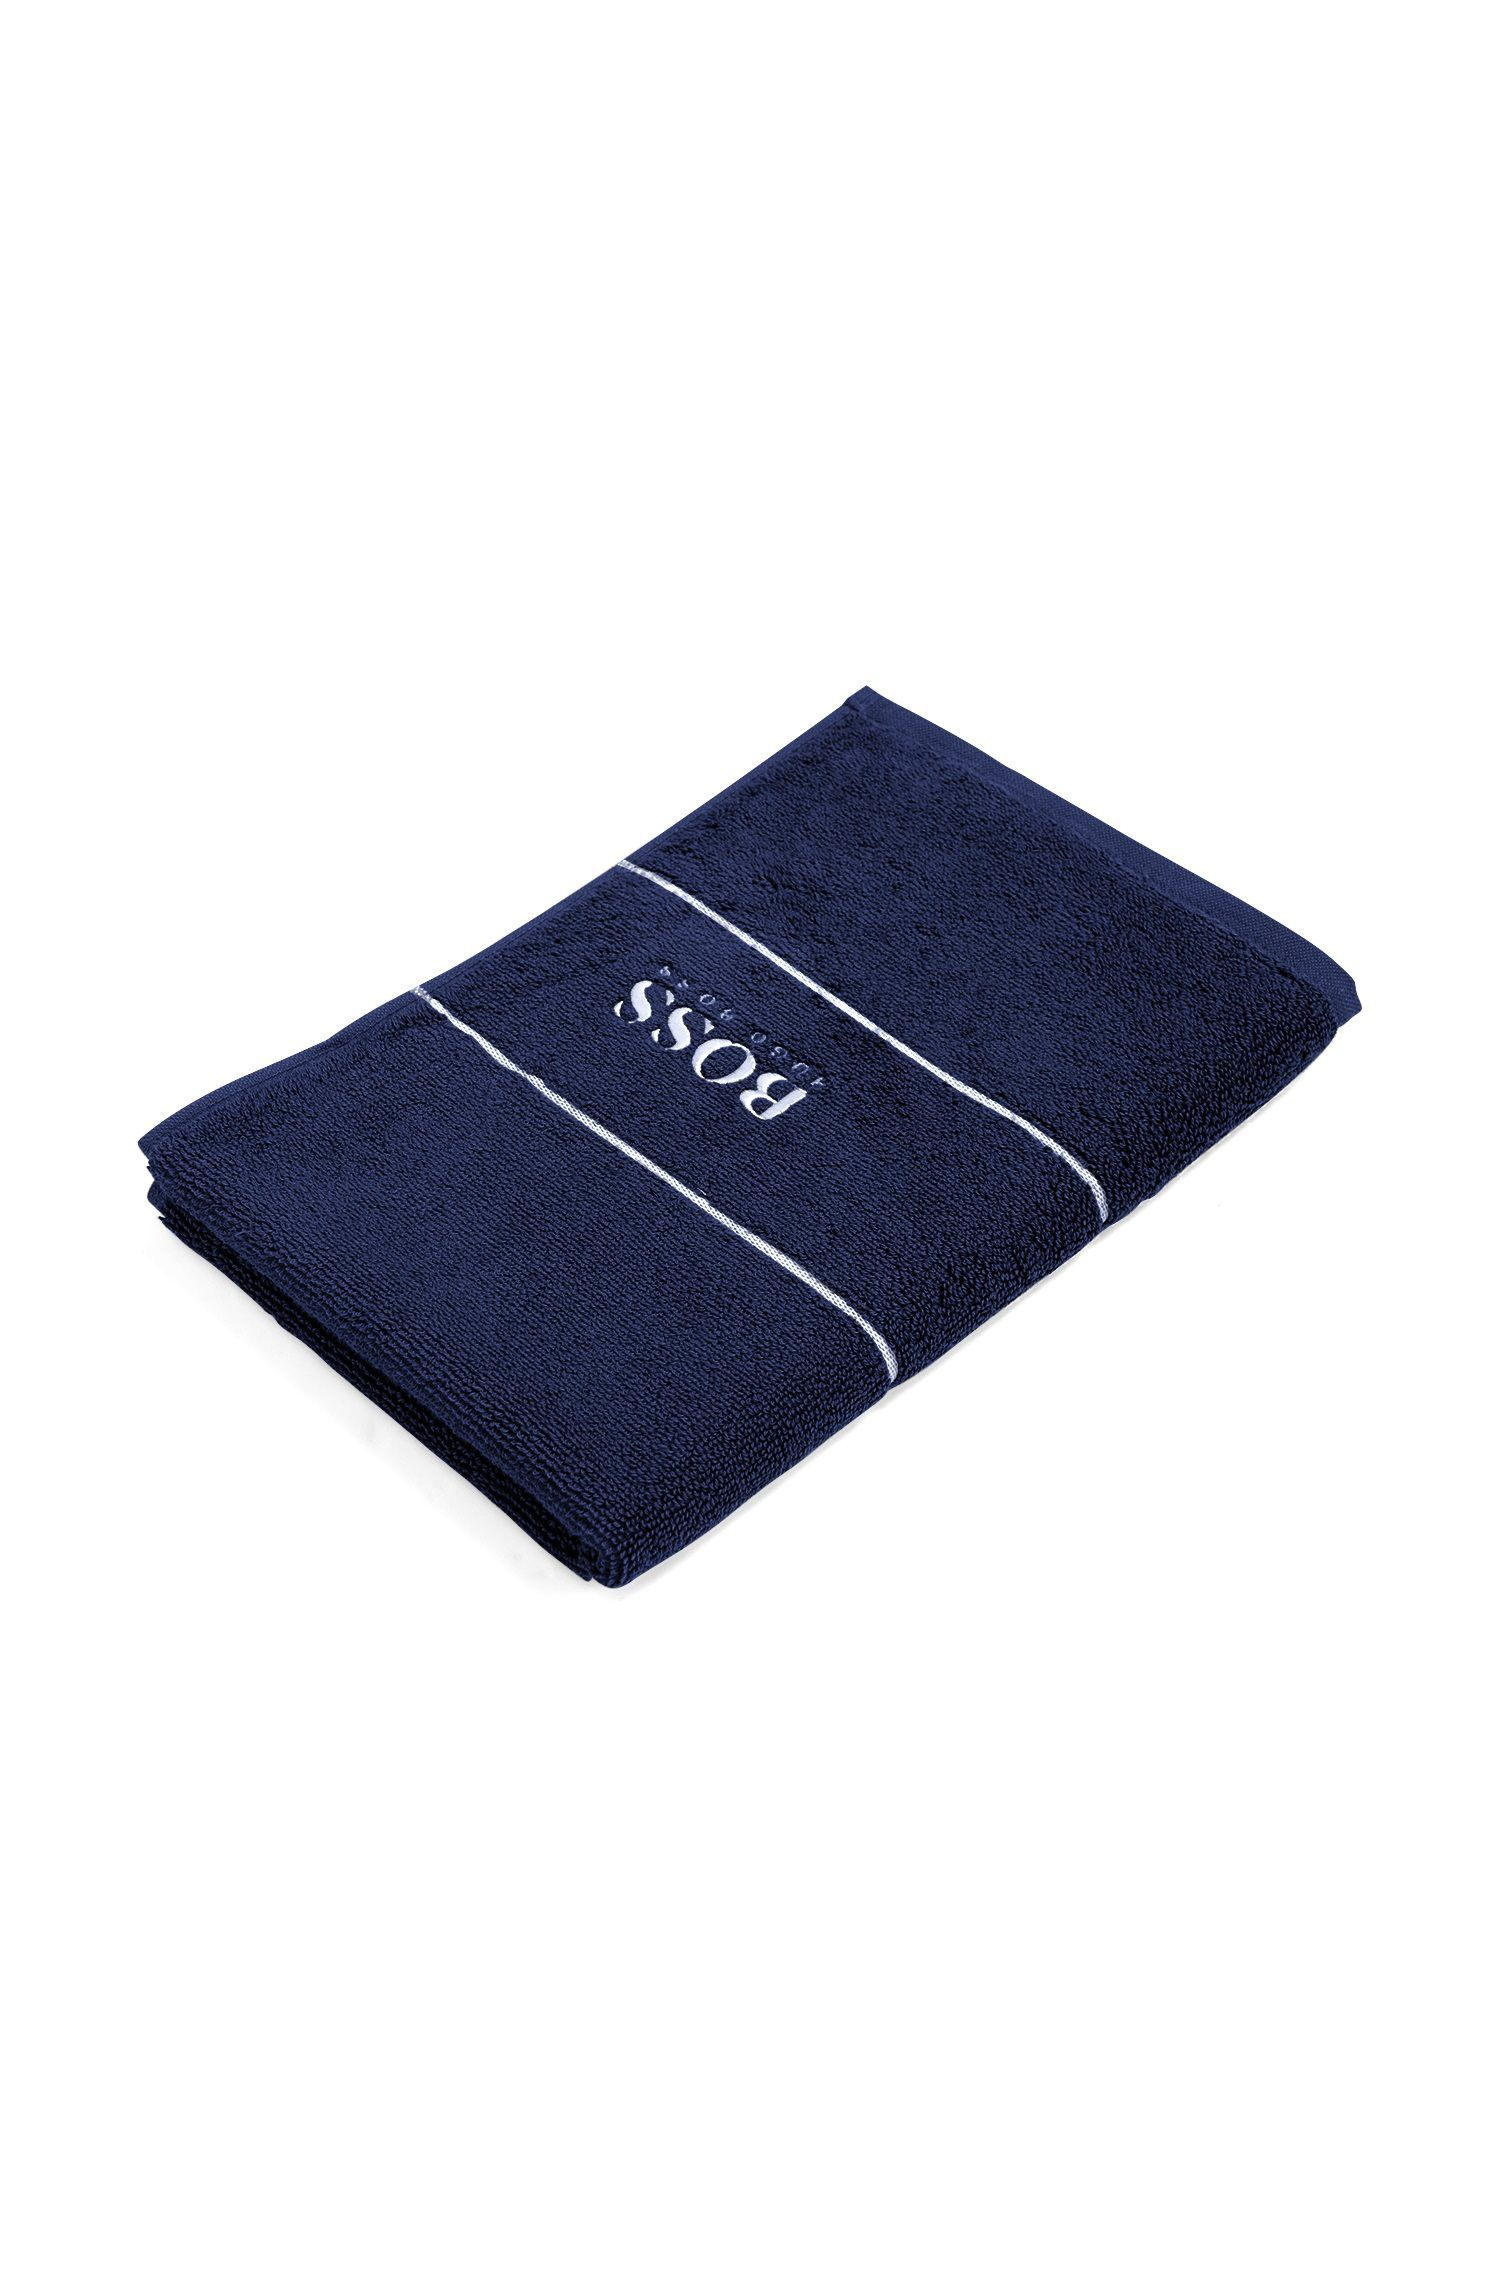 Finest Egyptian cotton guest towel with logo border, Dark Blue